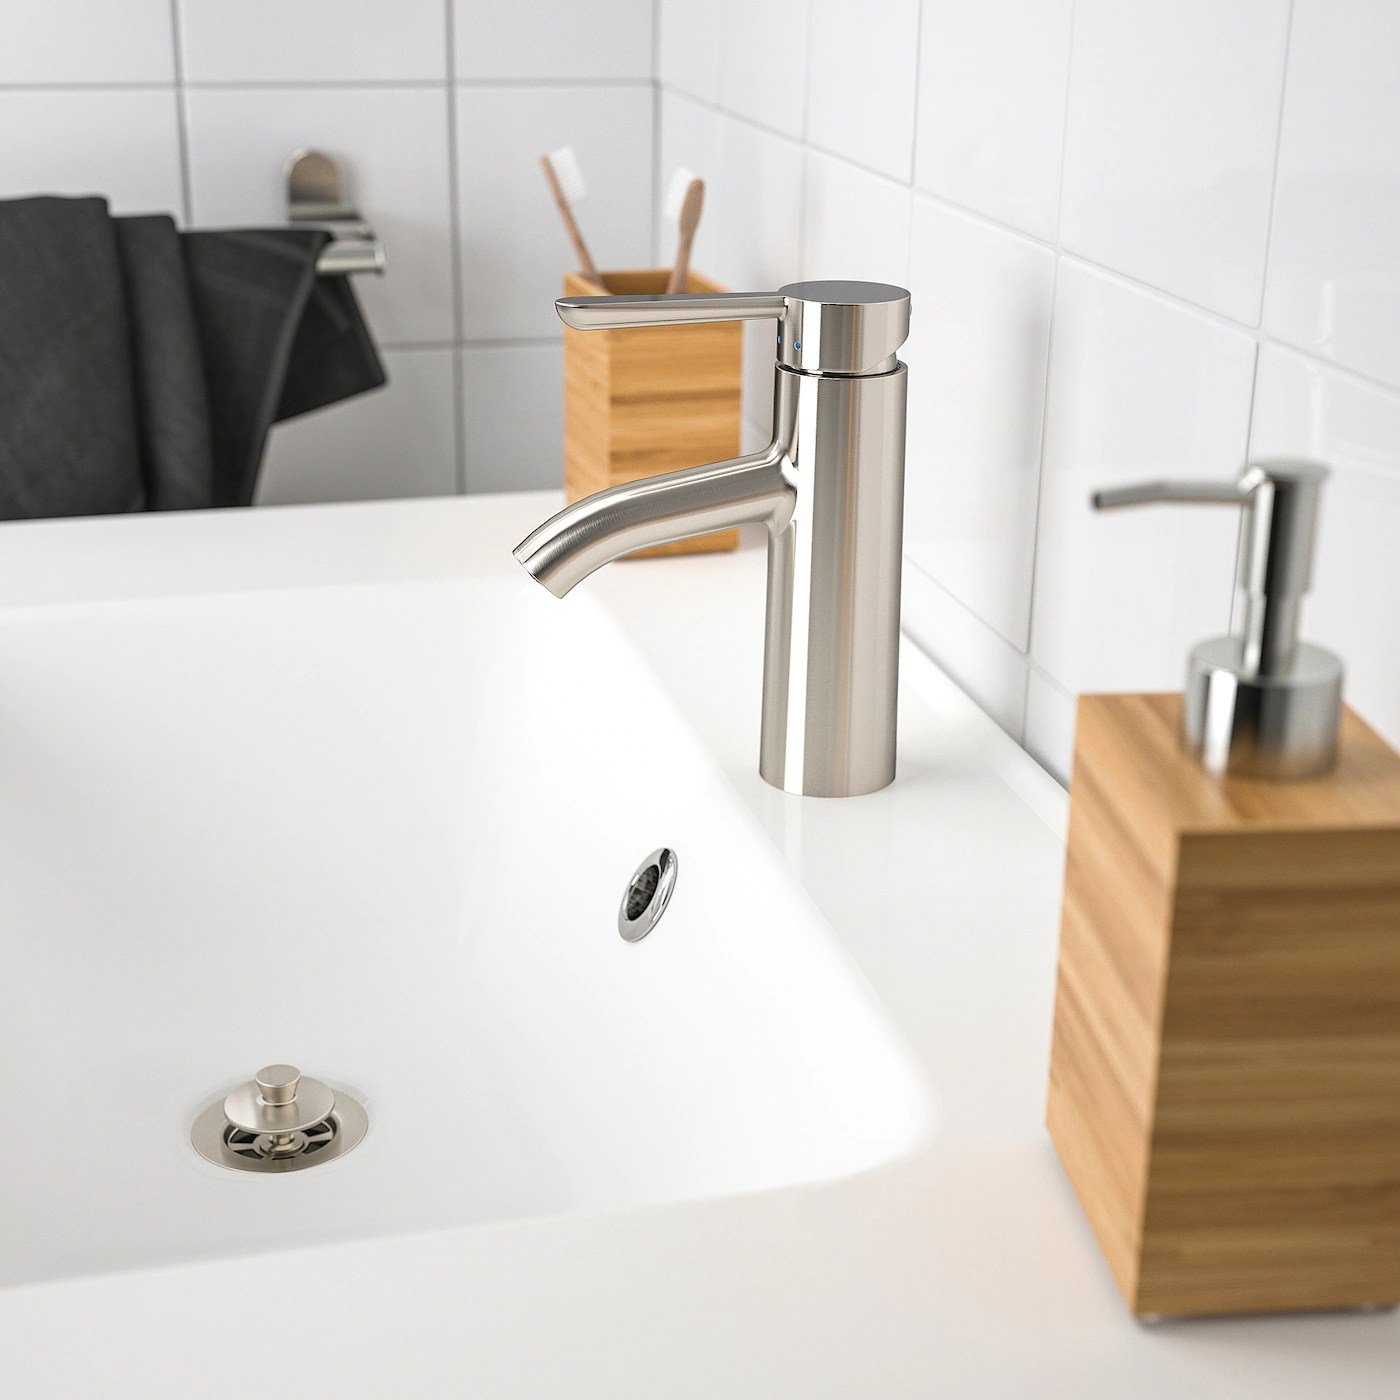 dalskar bath faucet with strainer stainless steel color